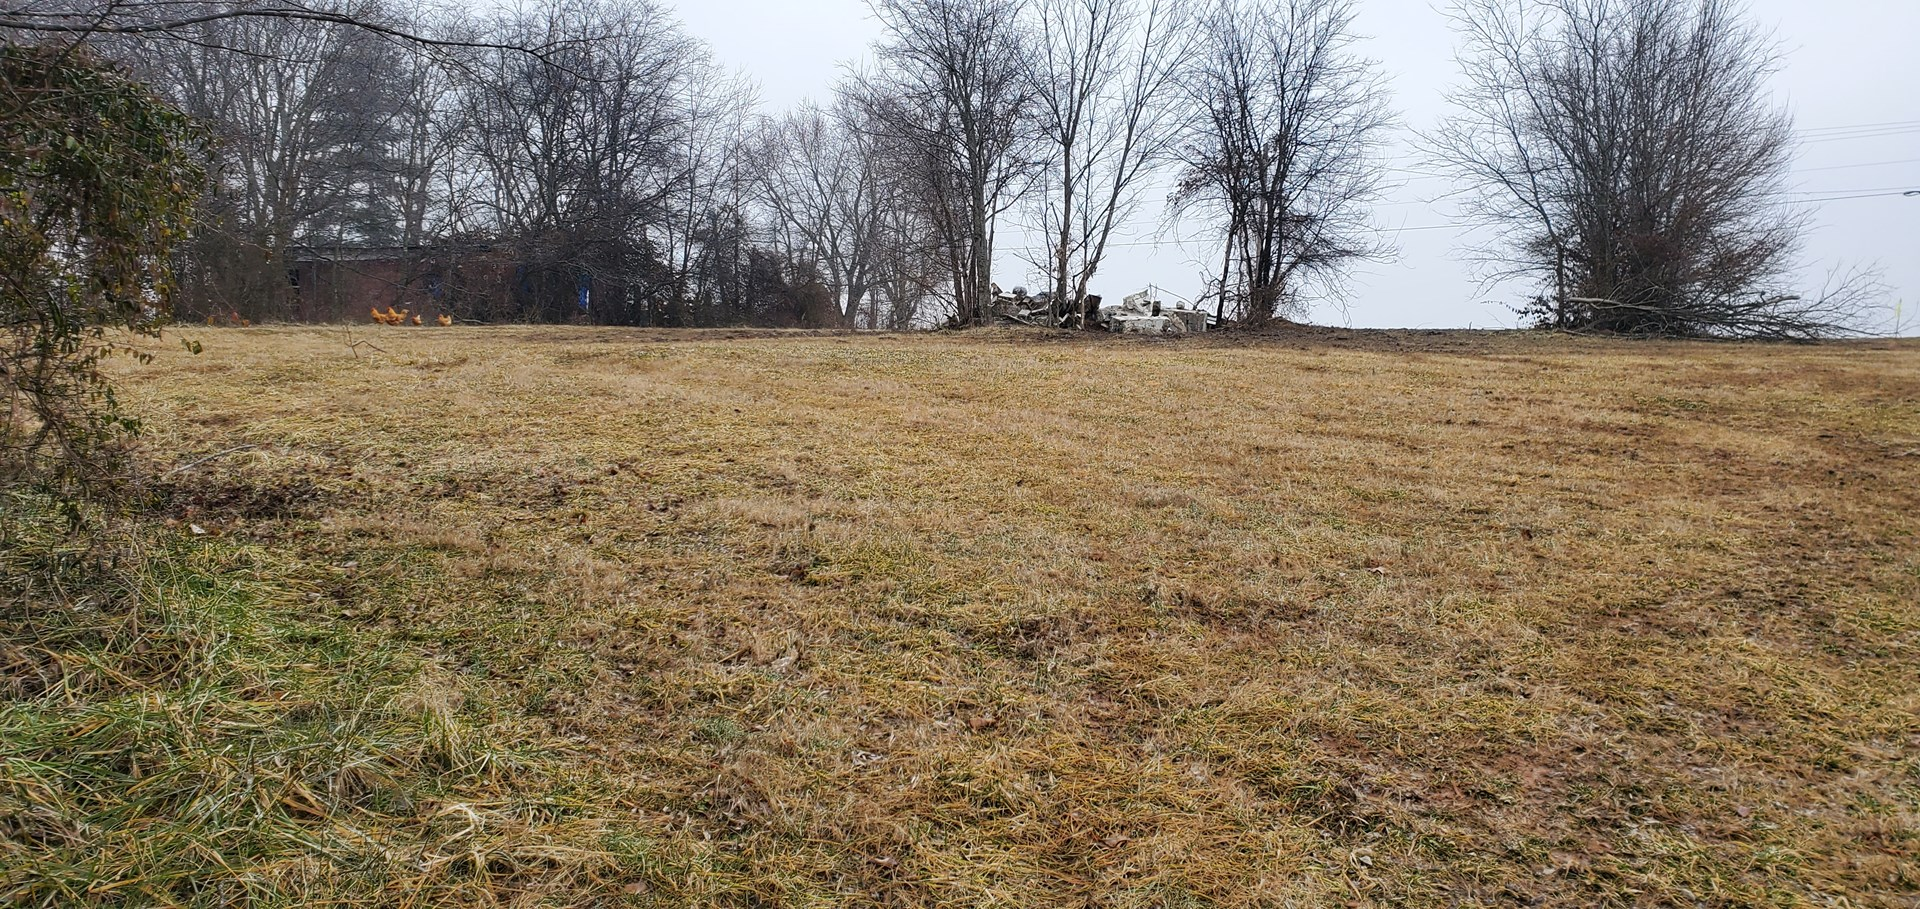 Scenic 5 acre lot for sale near Franklin Ky.